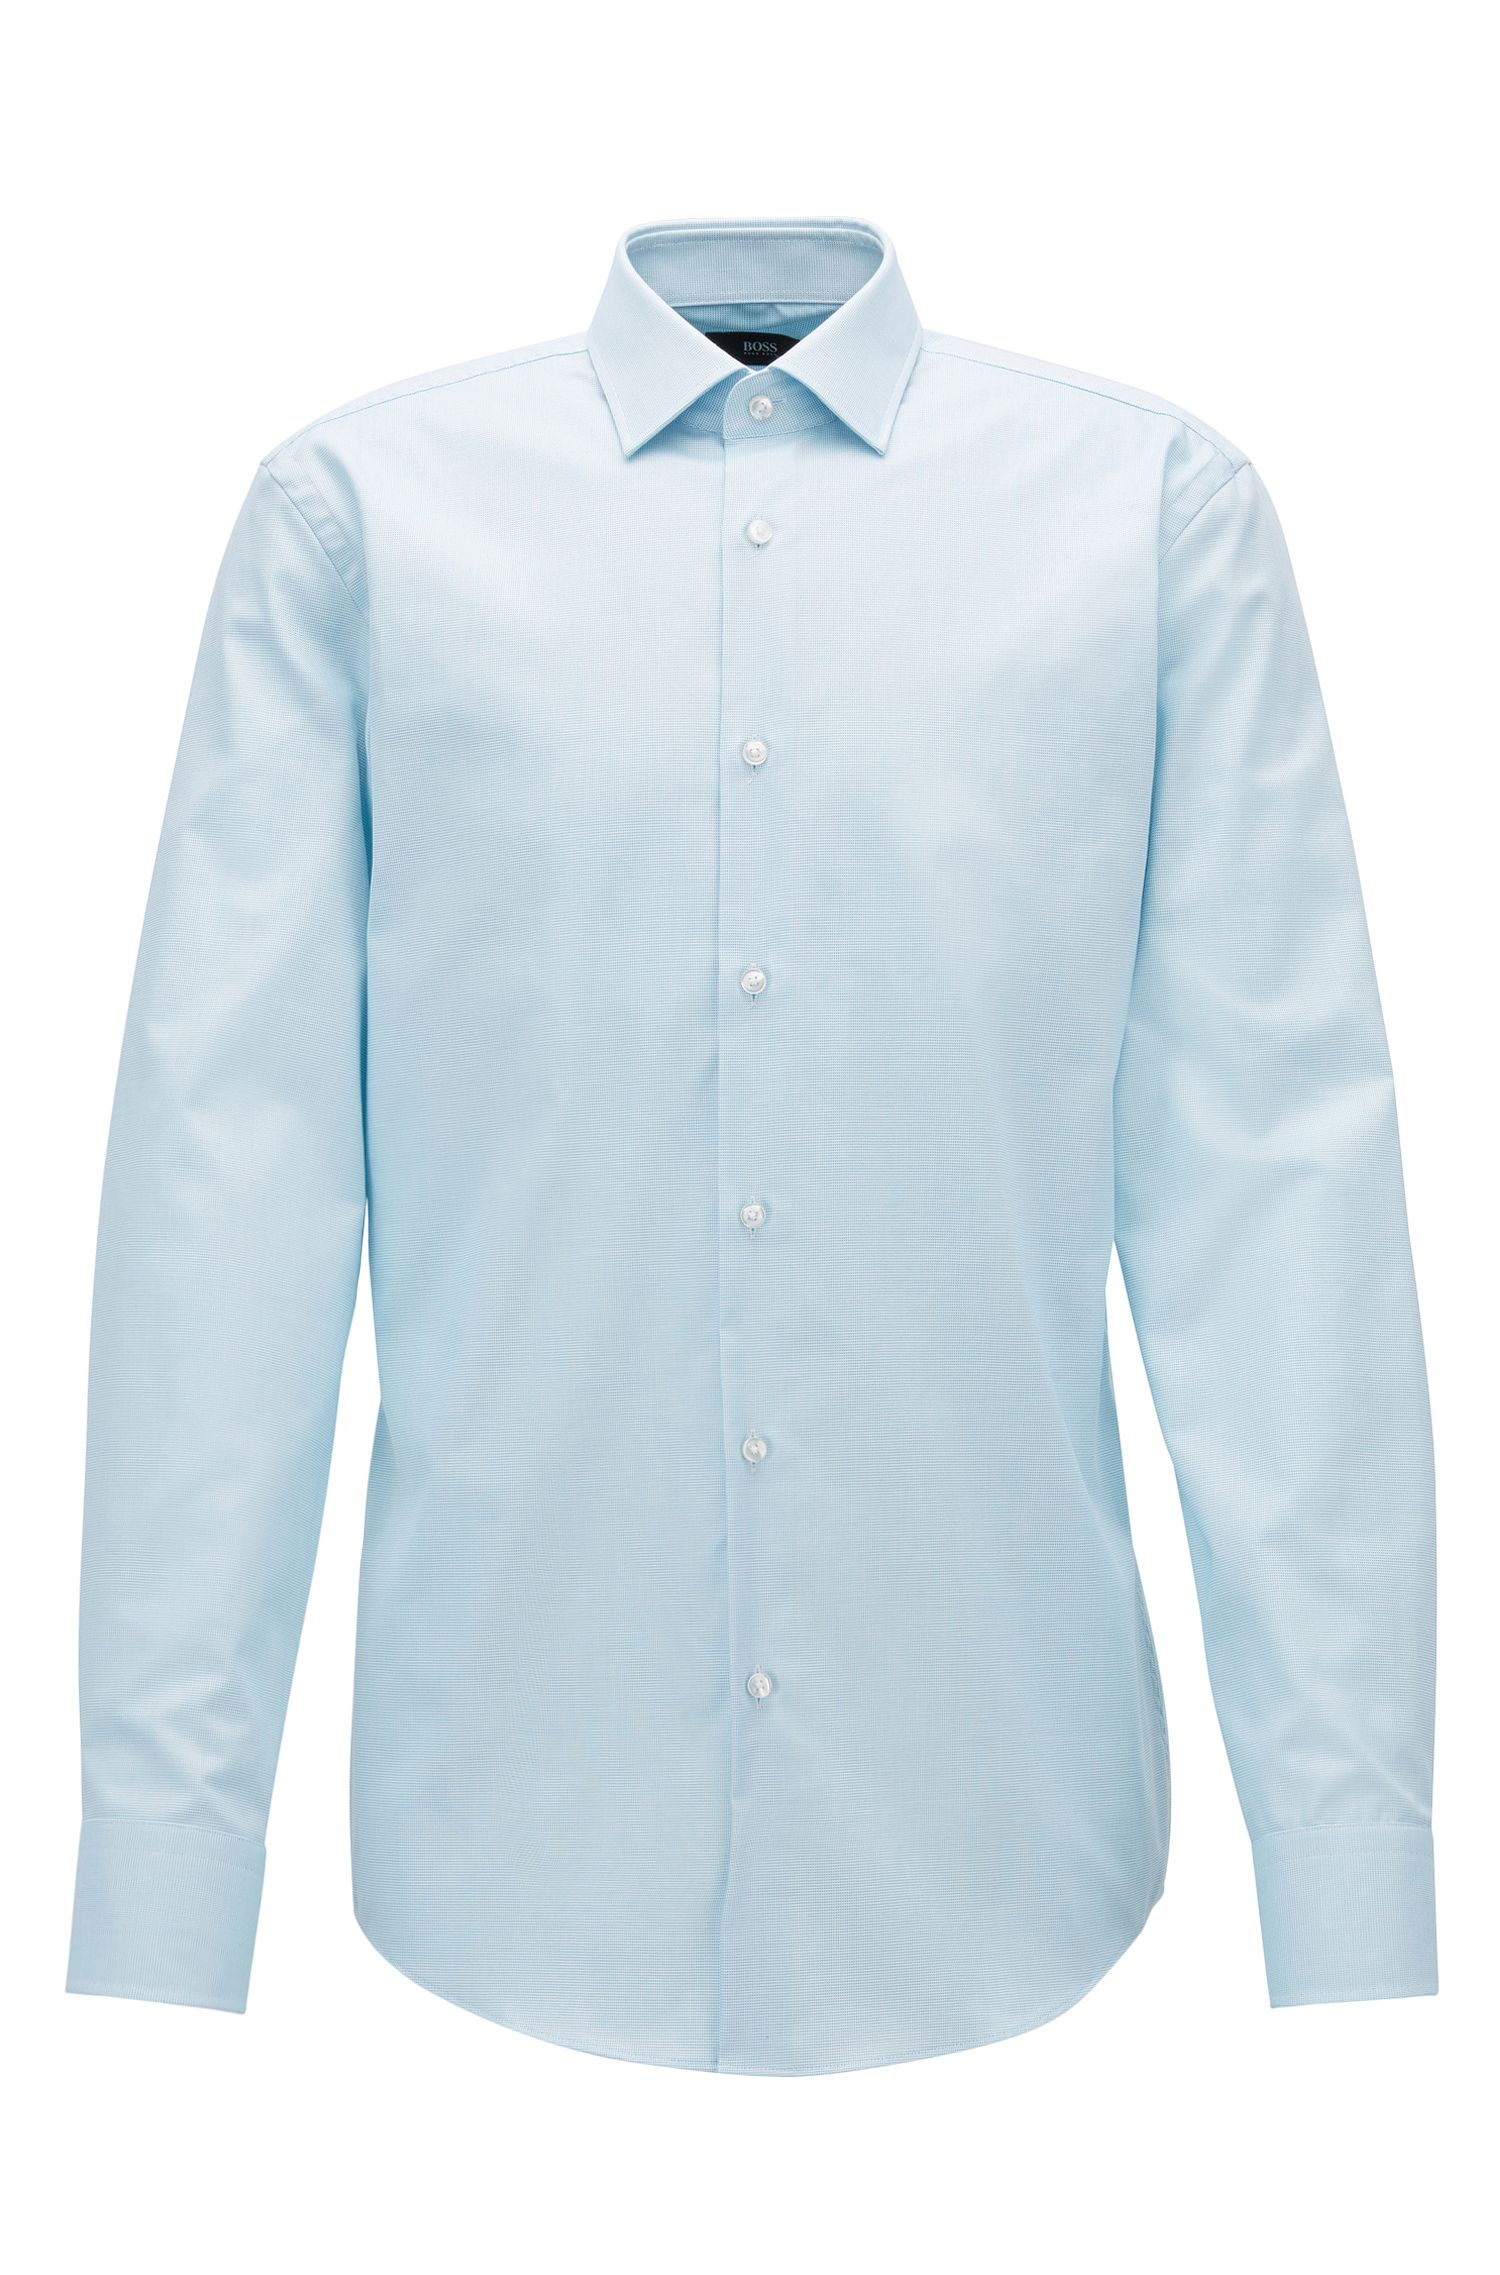 Slim-fit micro-check cotton shirt with Fresh Active finish